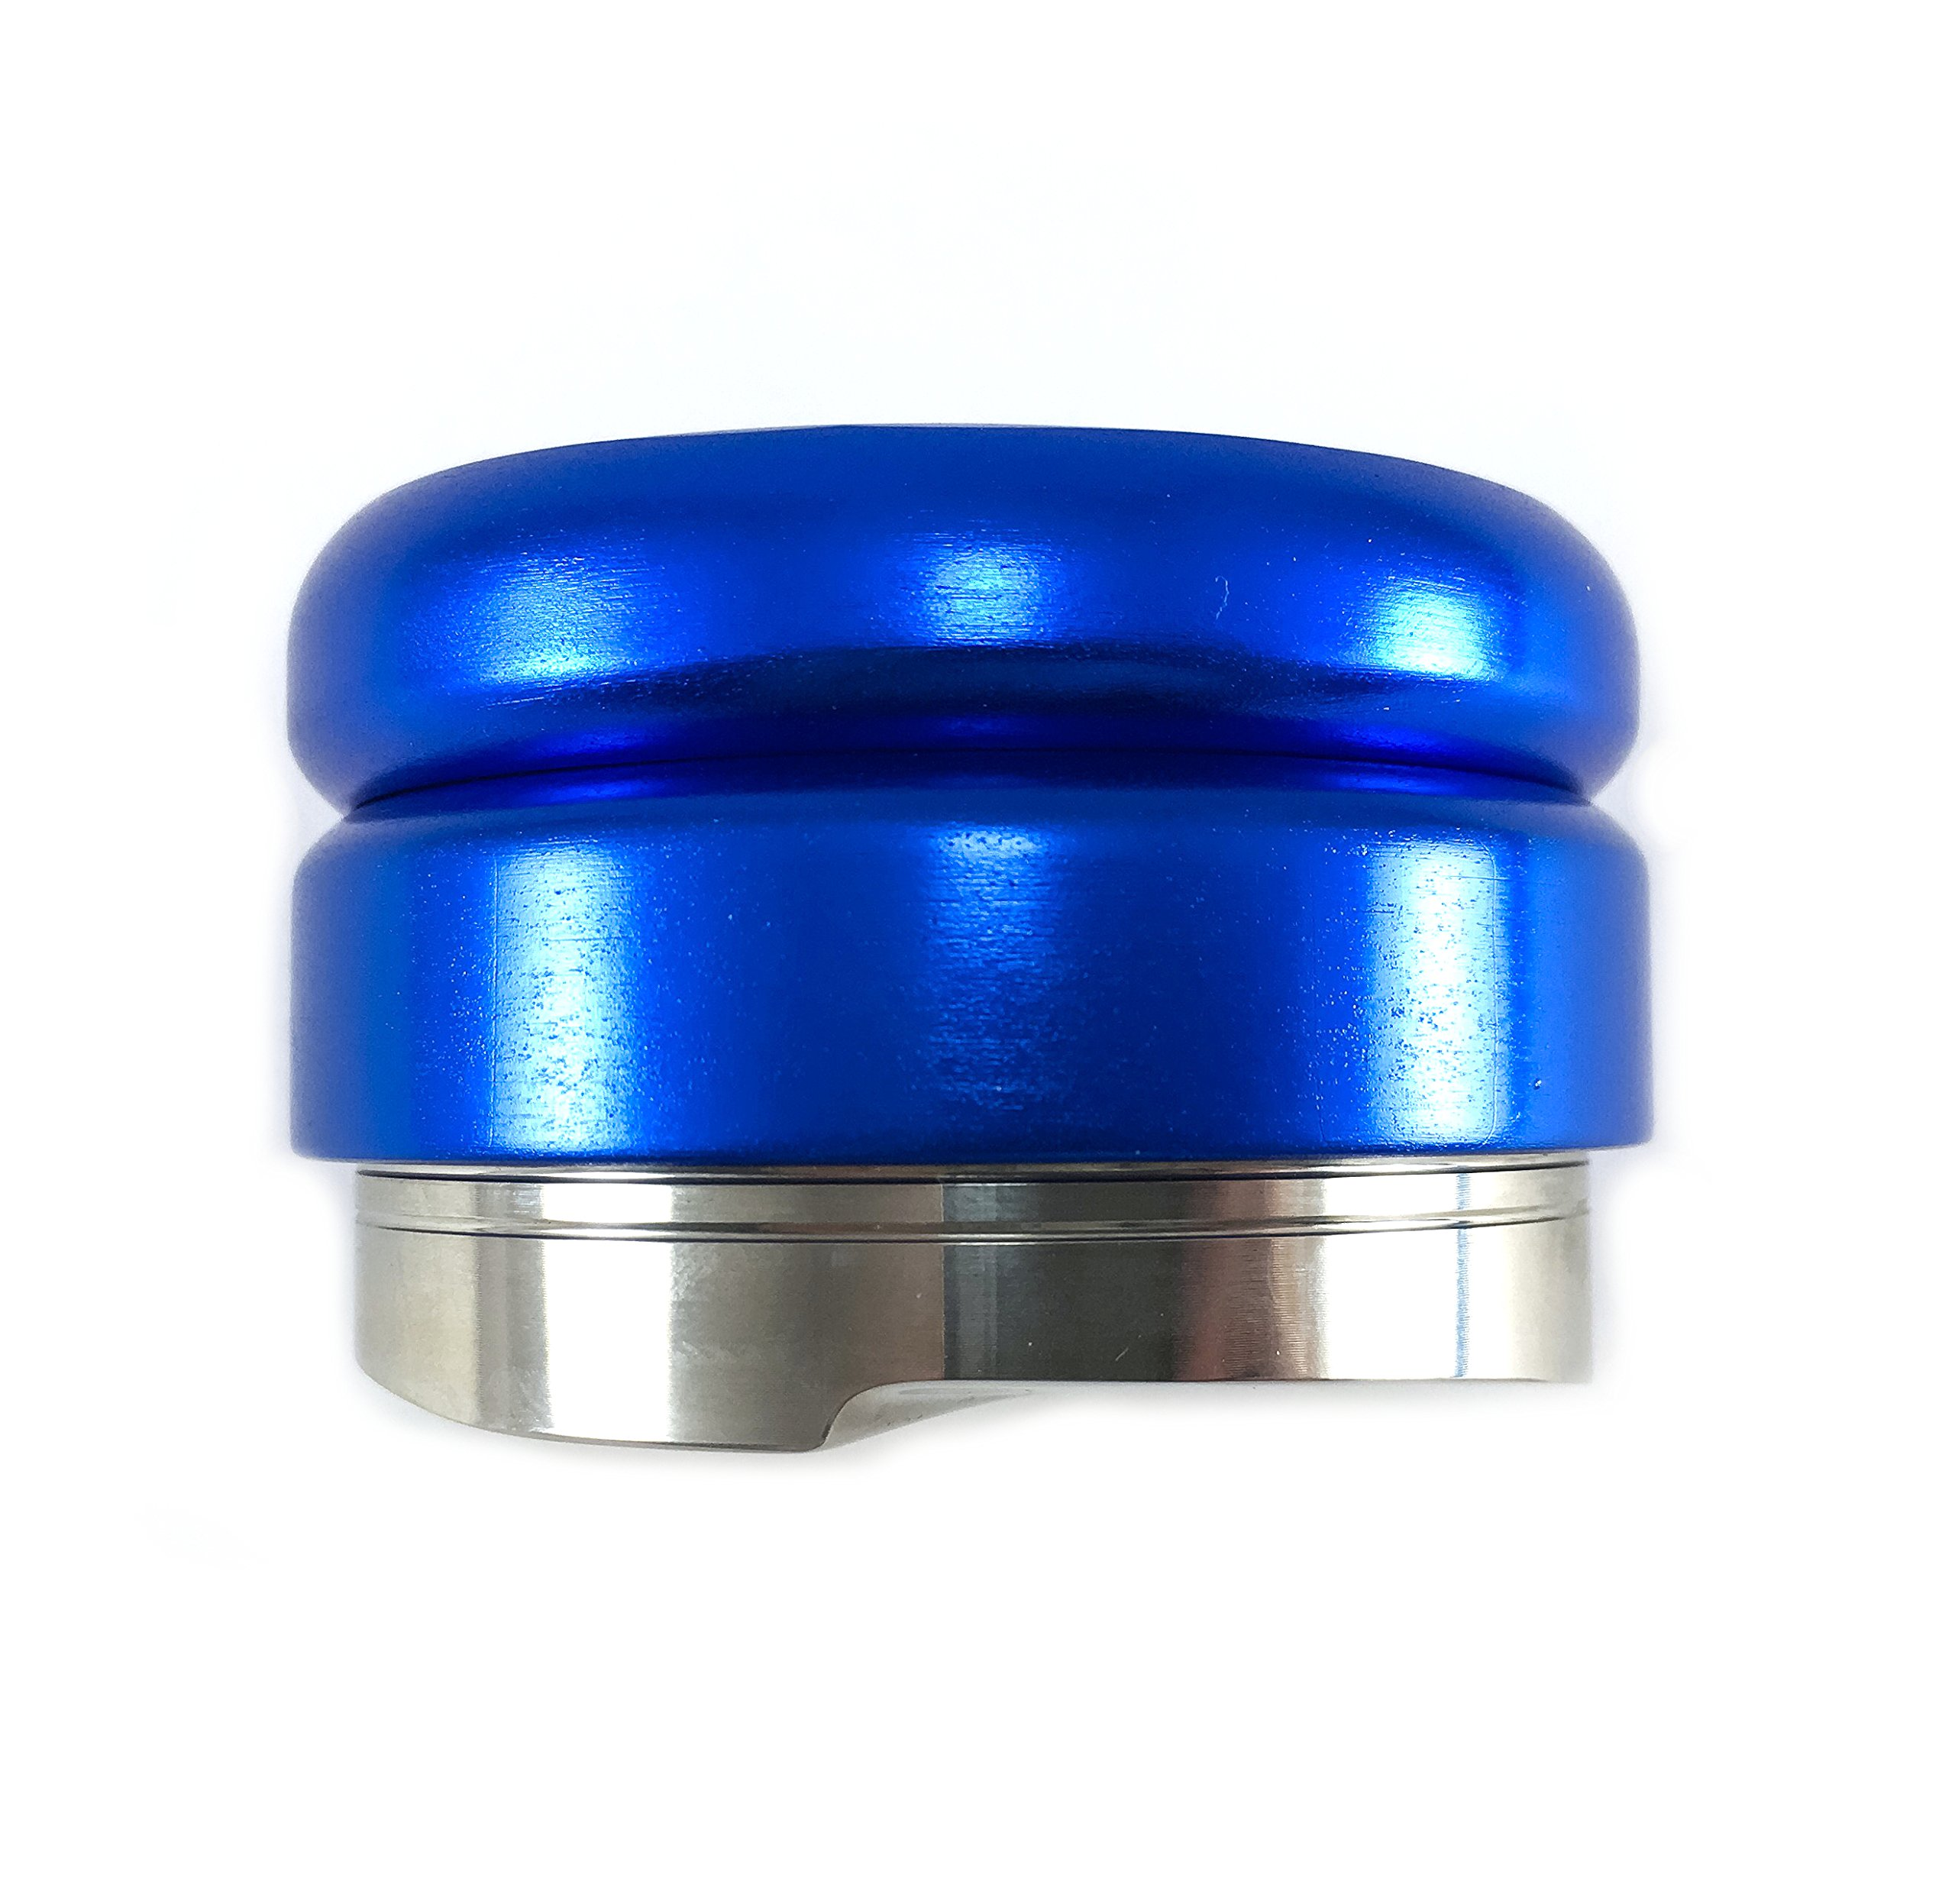 Coffee Distributor/Leveler Tool – for 58mm Espresso Portafilters – EVENLY DISTRIBUTES COFFEE GROUNDS – Provides Proper Tamping - ADJUSTABLE (58mm, Blue) by Coffee Nebula (Image #6)